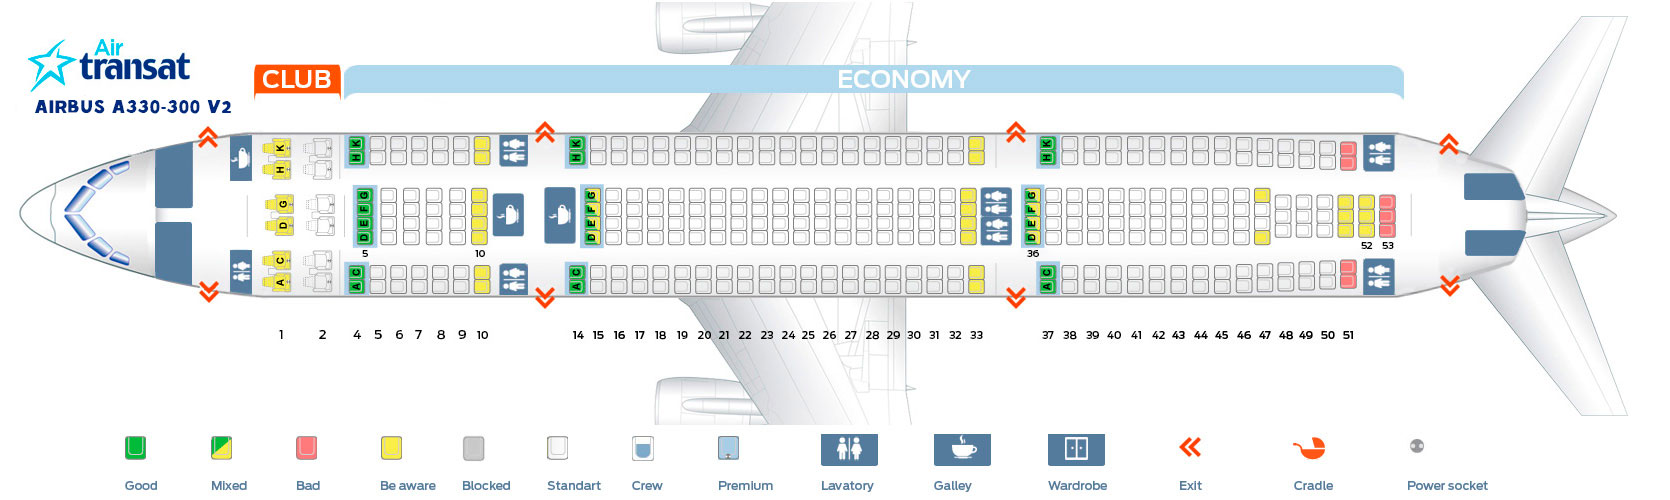 Seat map Airbus A330-300 V2 Air Transat